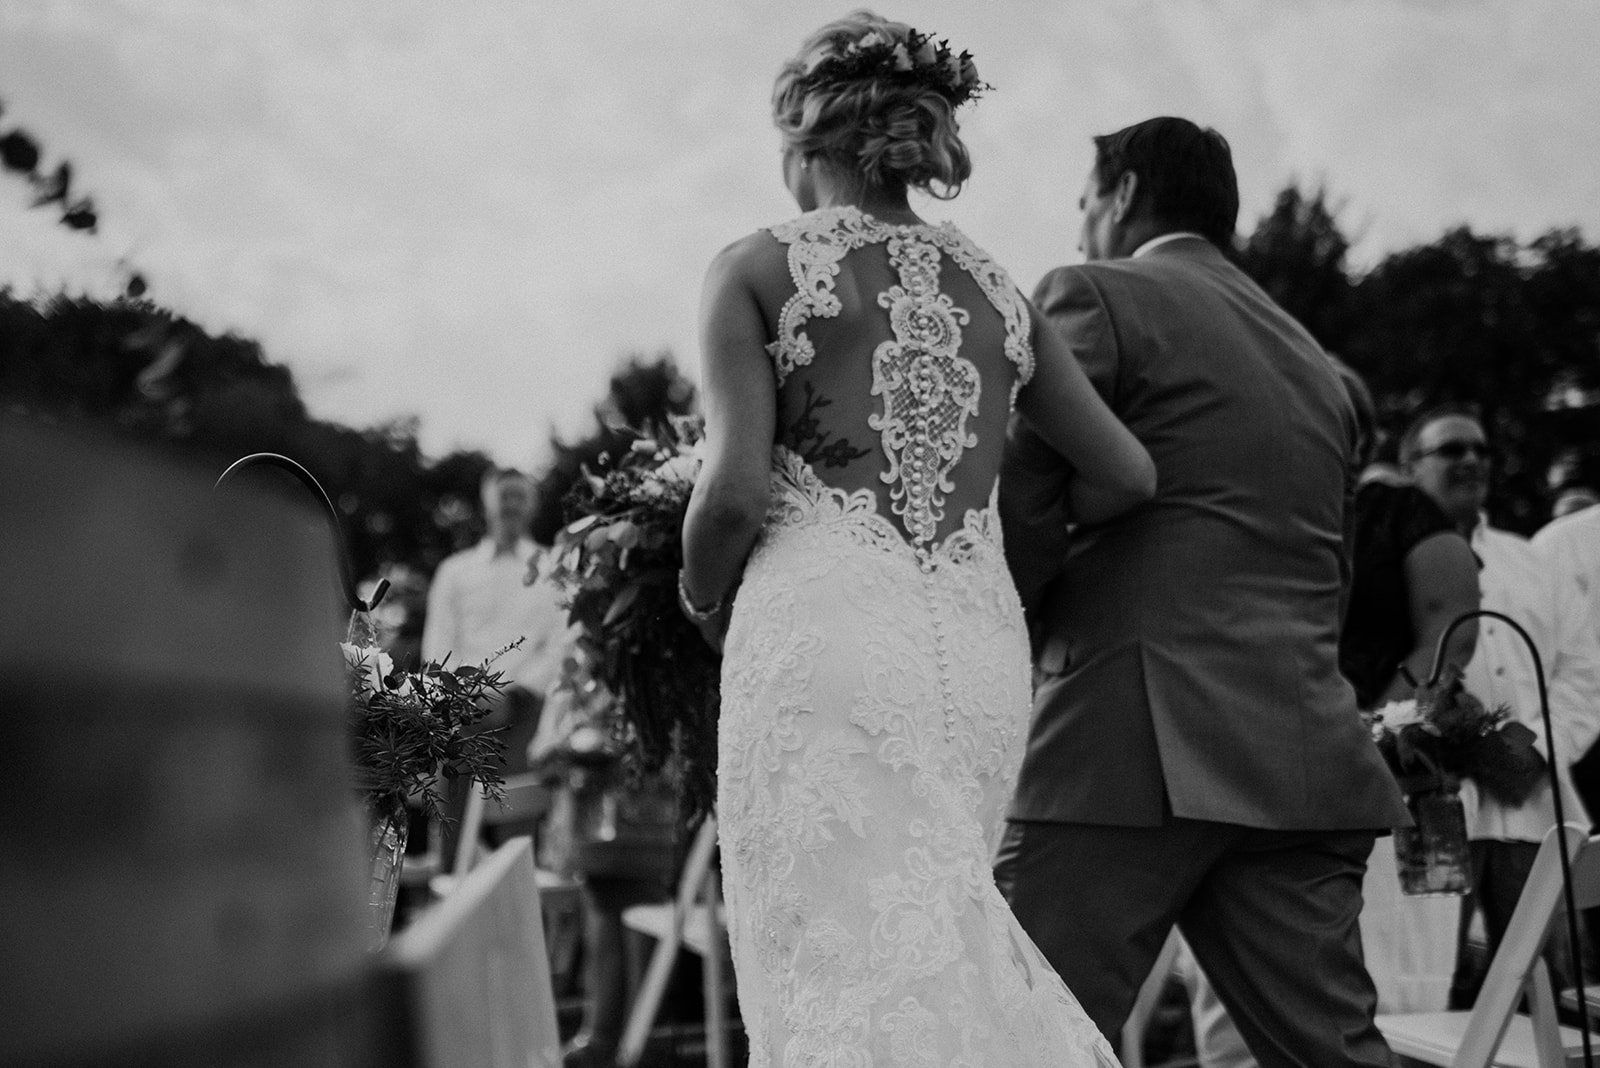 overthevineswisconsinwedding_0617.jpg